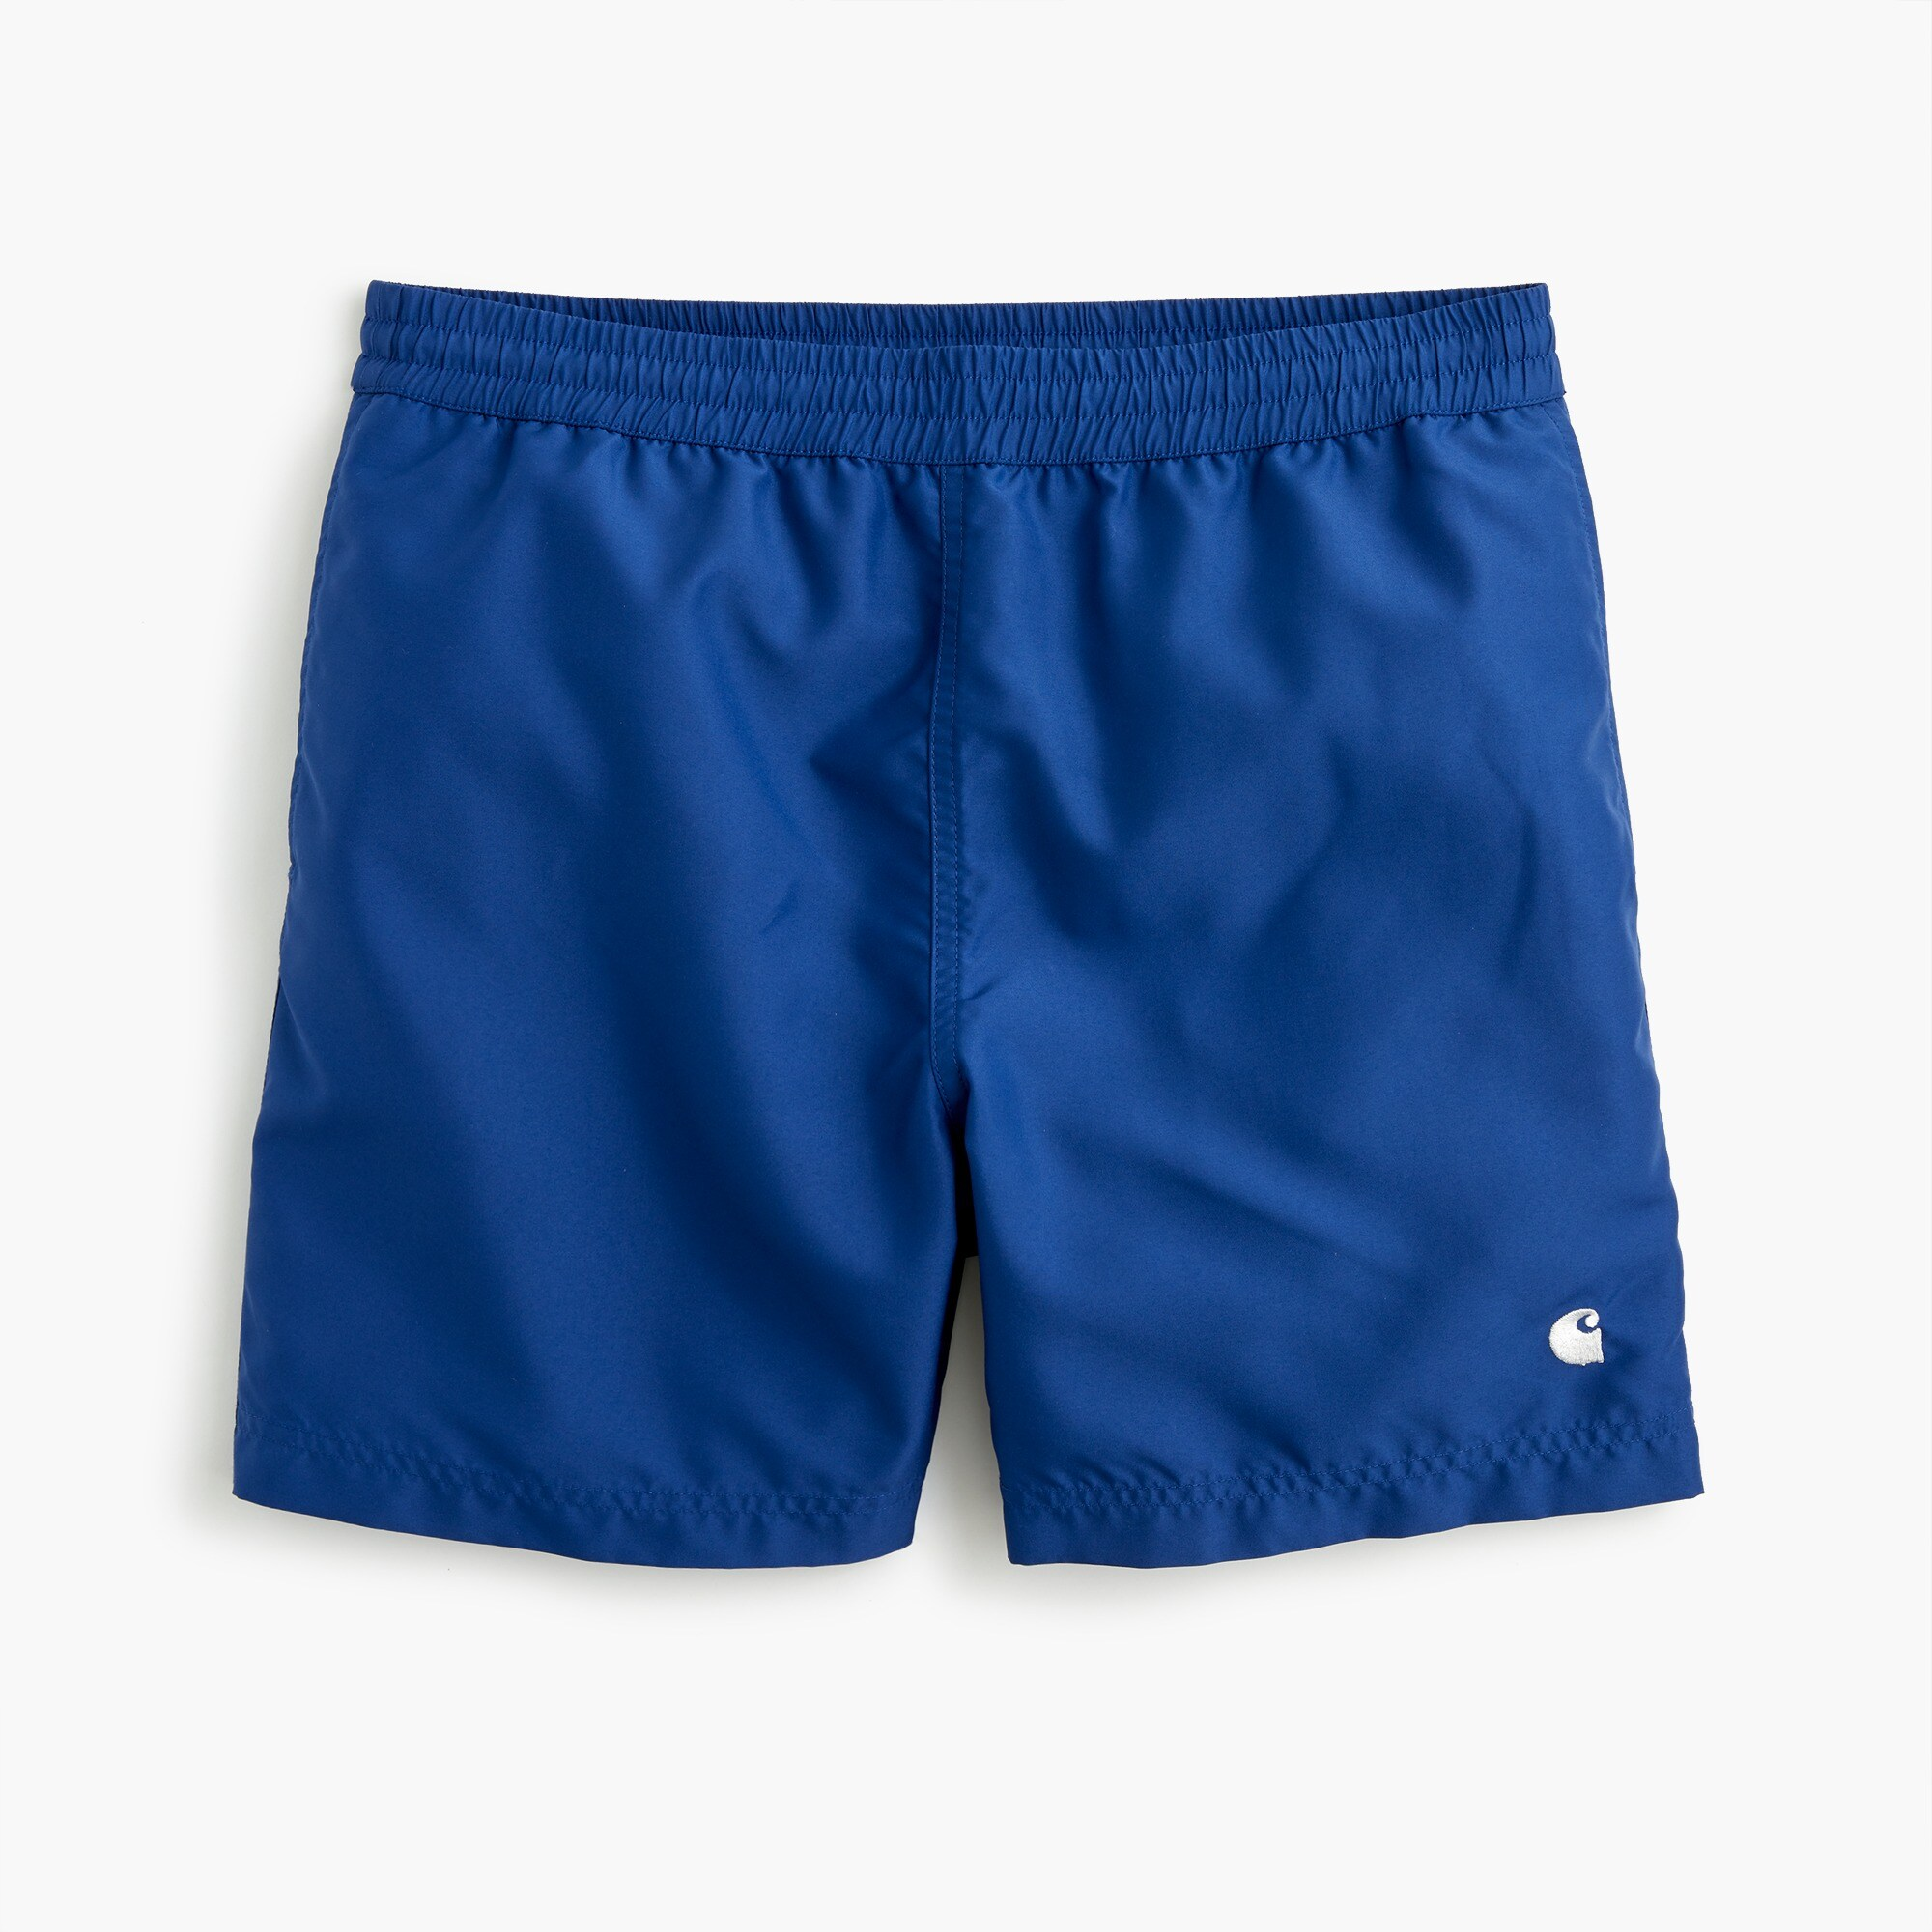 "6"" Carhartt® Work in Progress trunk men swim c"